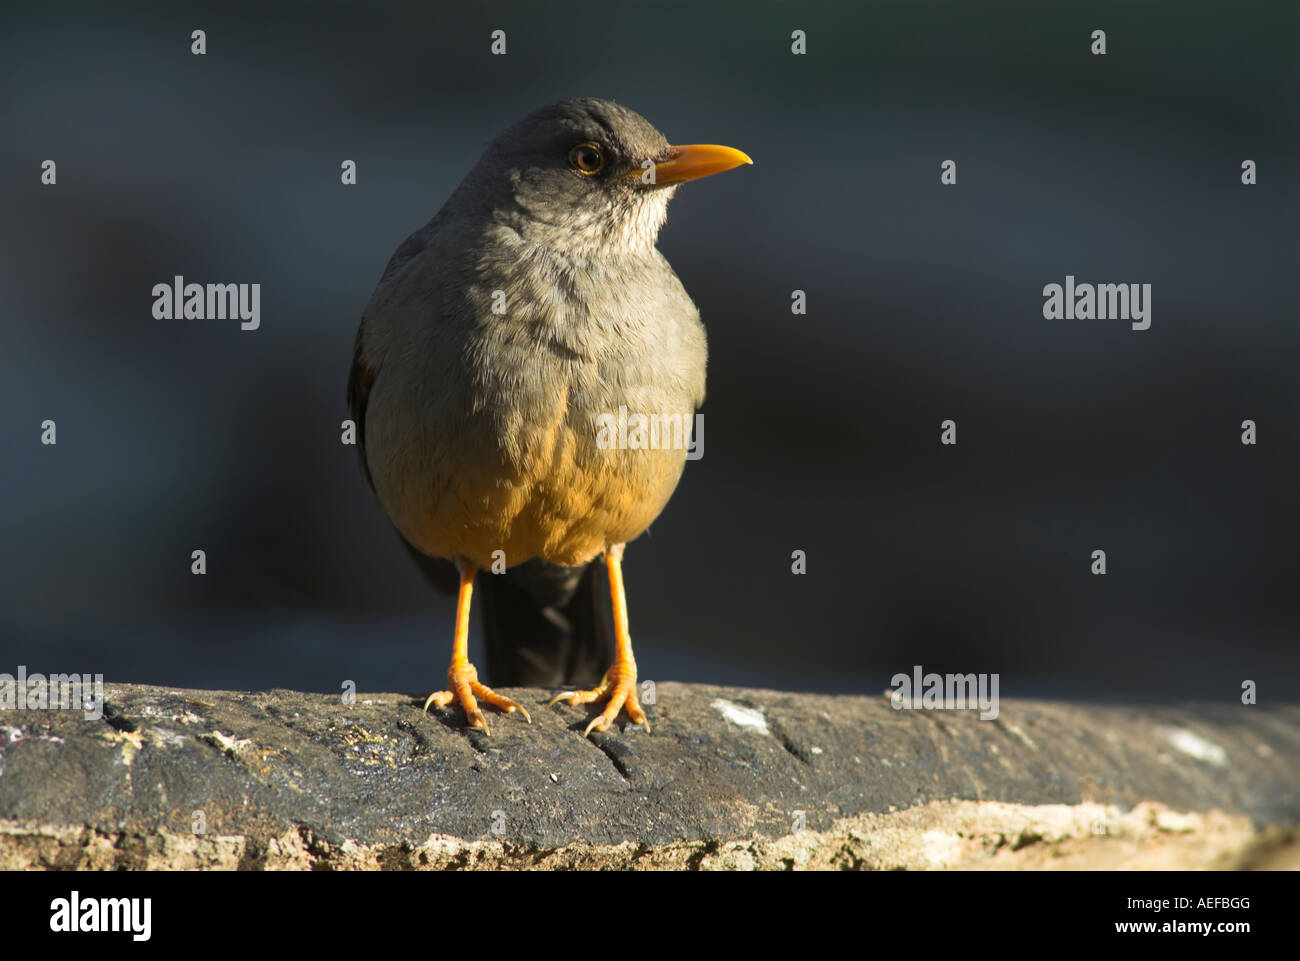 Olive Thrush (Turdus olivaceus) perched on a plank of wood Stock Photo